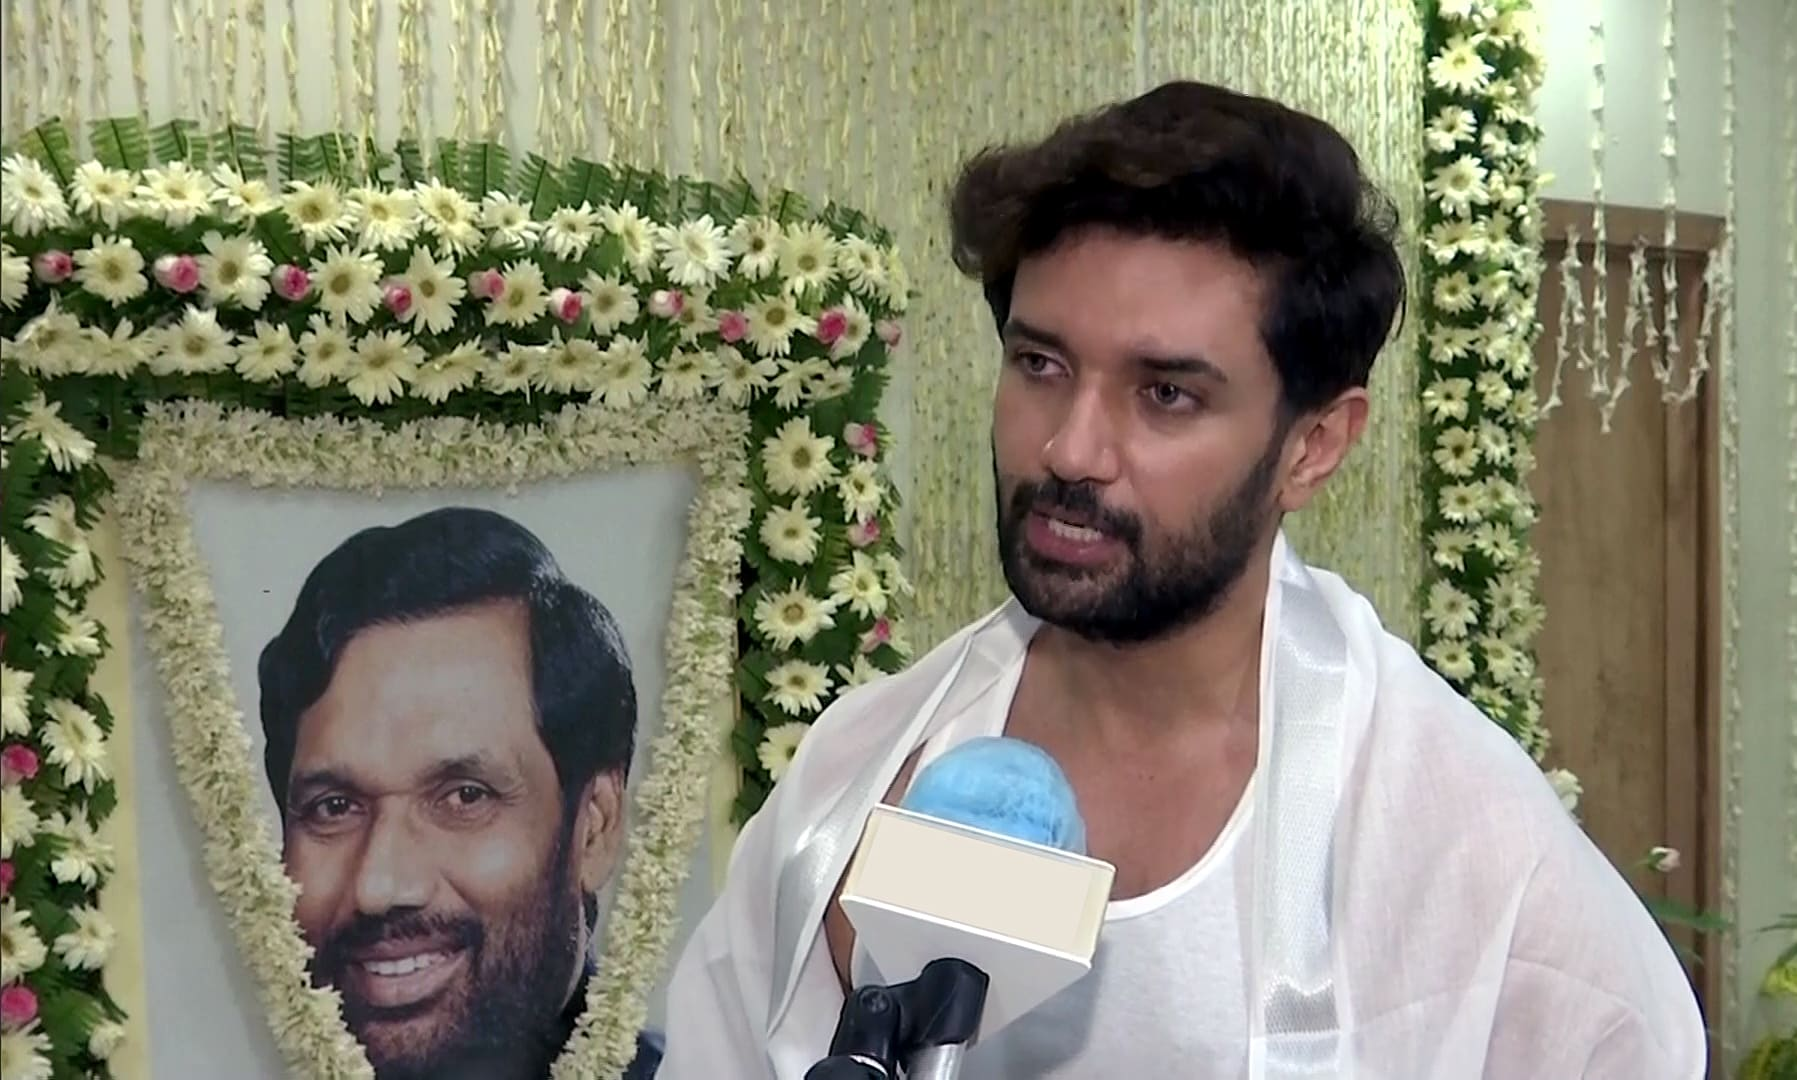 Chirag should worry about his father's legacy, not use harsh words: BJP